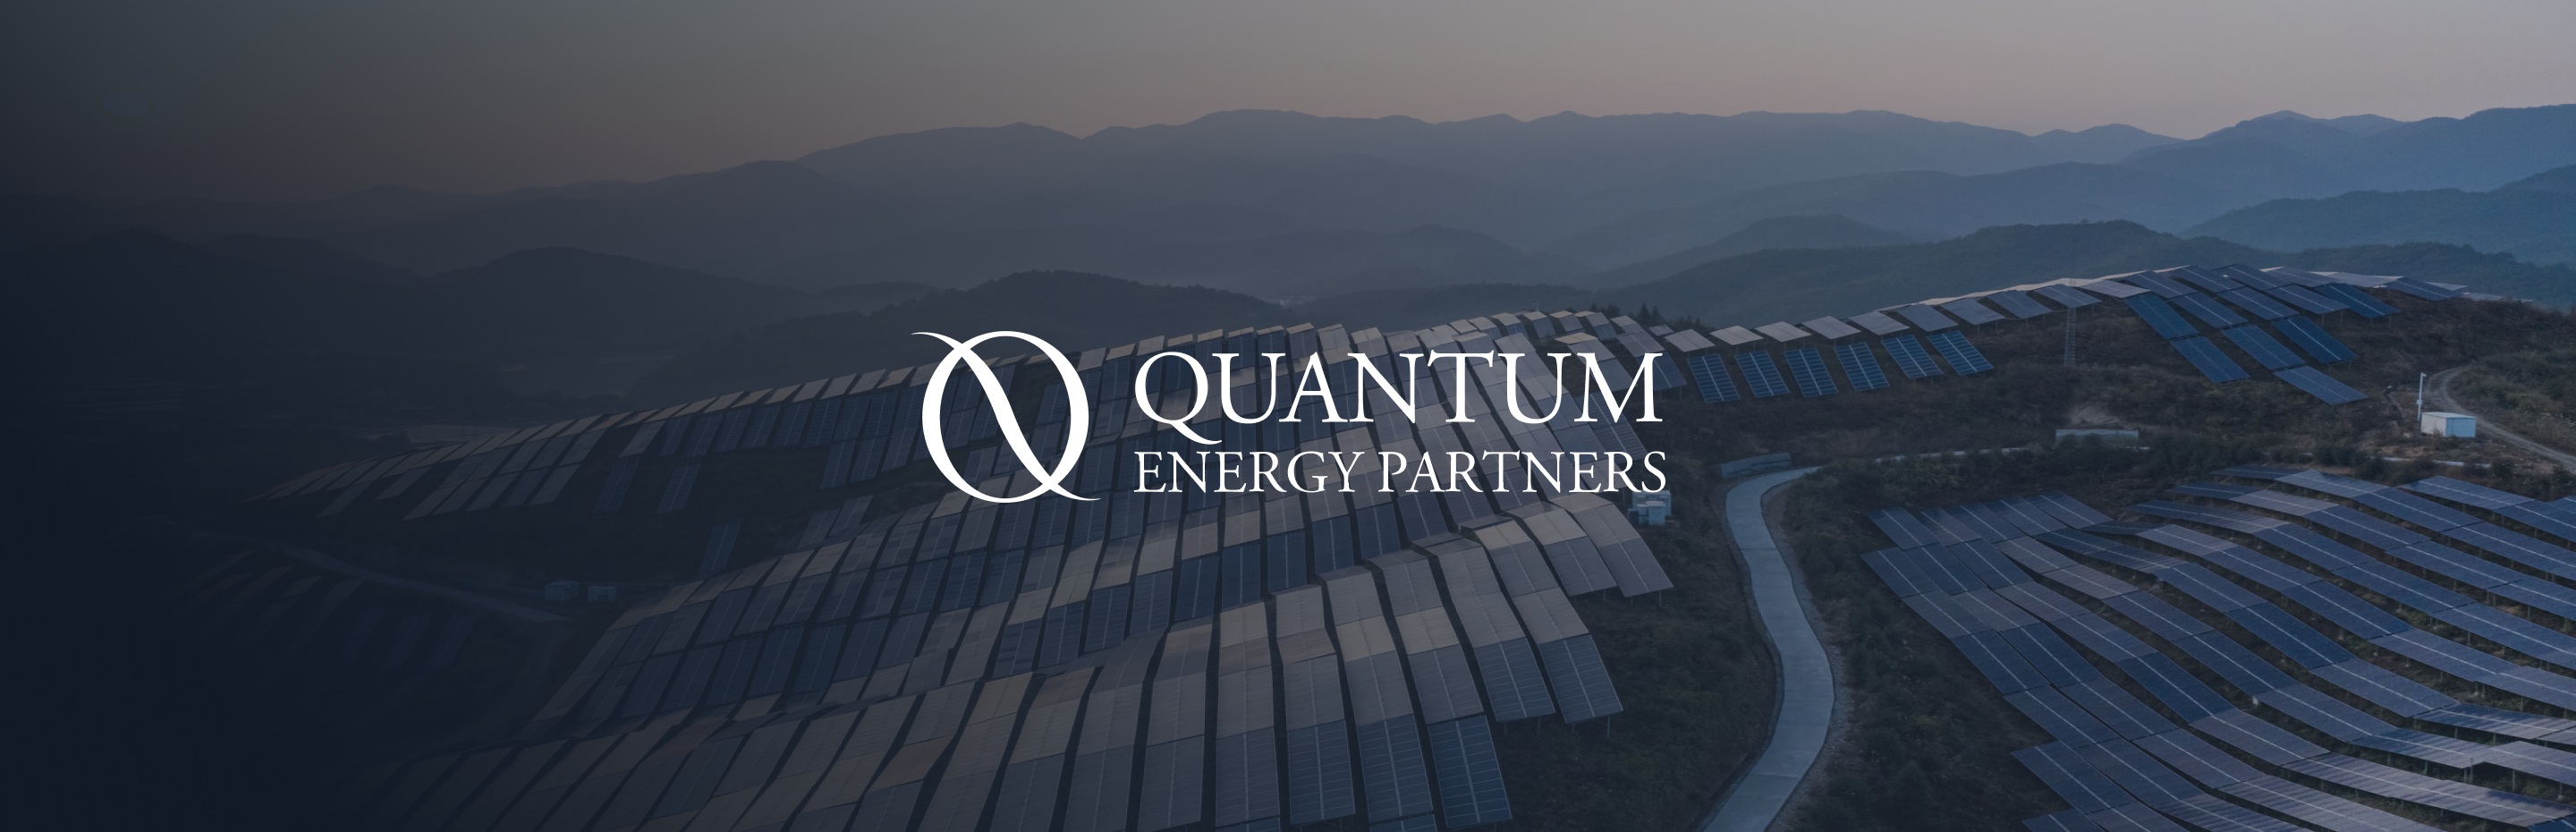 Quantum Energy Partners: aligning the website with the firm's values and strategy